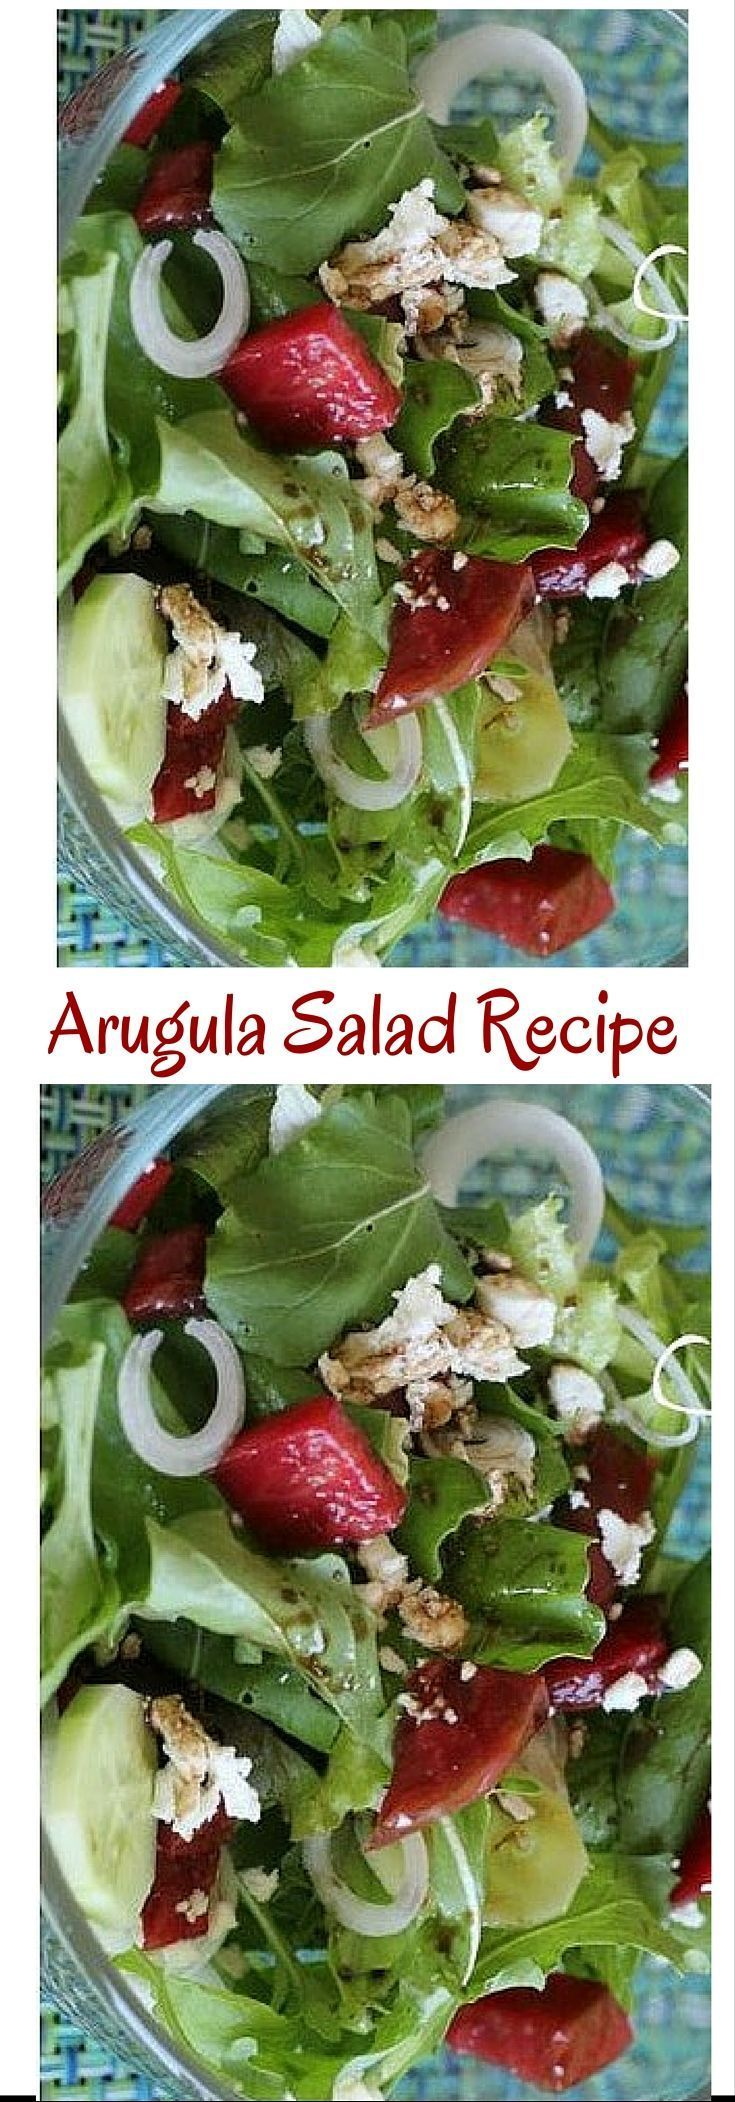 Craving arugula salad? his arugula salad is very easy to make. Click here for the recipe or Pin to save for later.